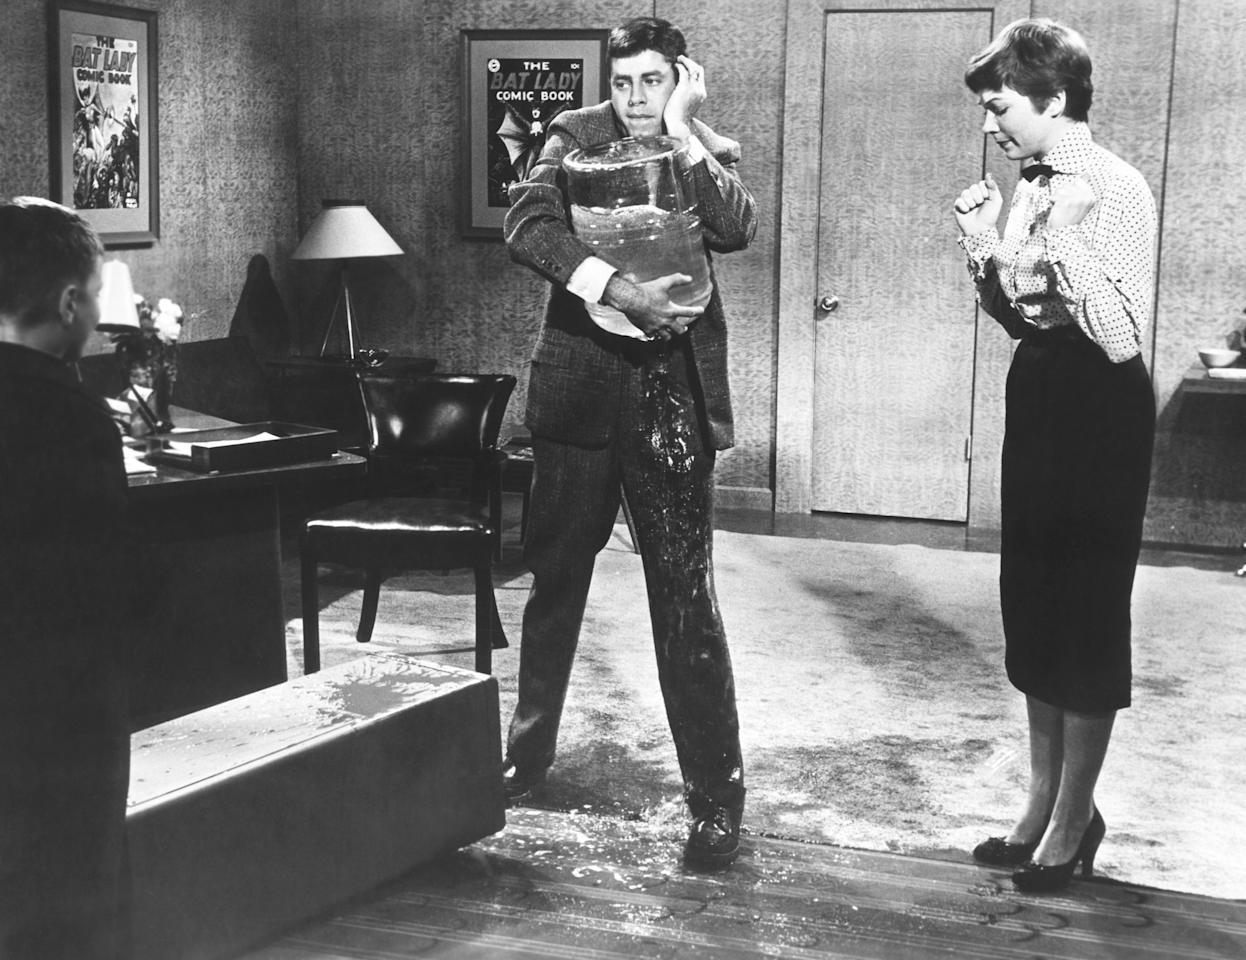 <p>The 14th and one of the best Martin-Lewis films, this romp co-starred Shirley MacLaine. (Photo: Everett Collection) </p>